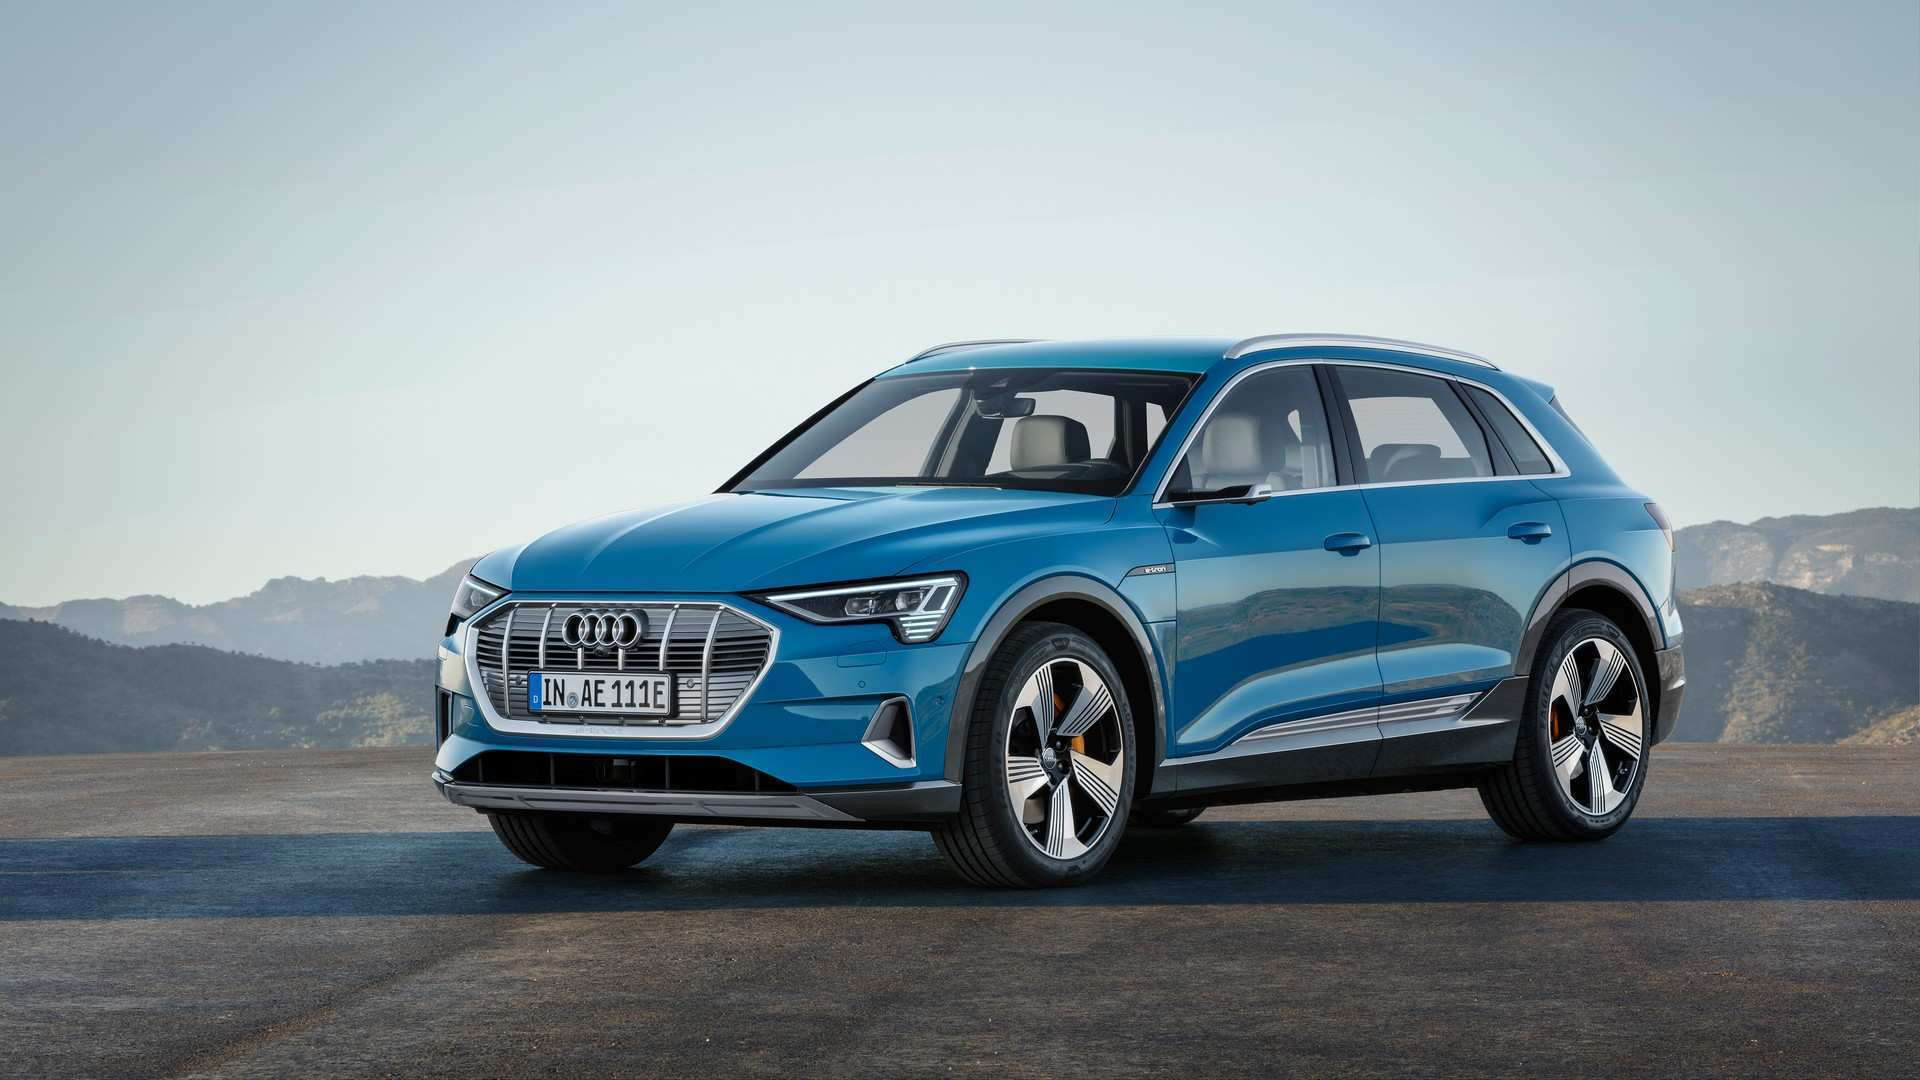 63 Best Review 2019 Audi E Tron Quattro Price Spesification with 2019 Audi E Tron Quattro Price